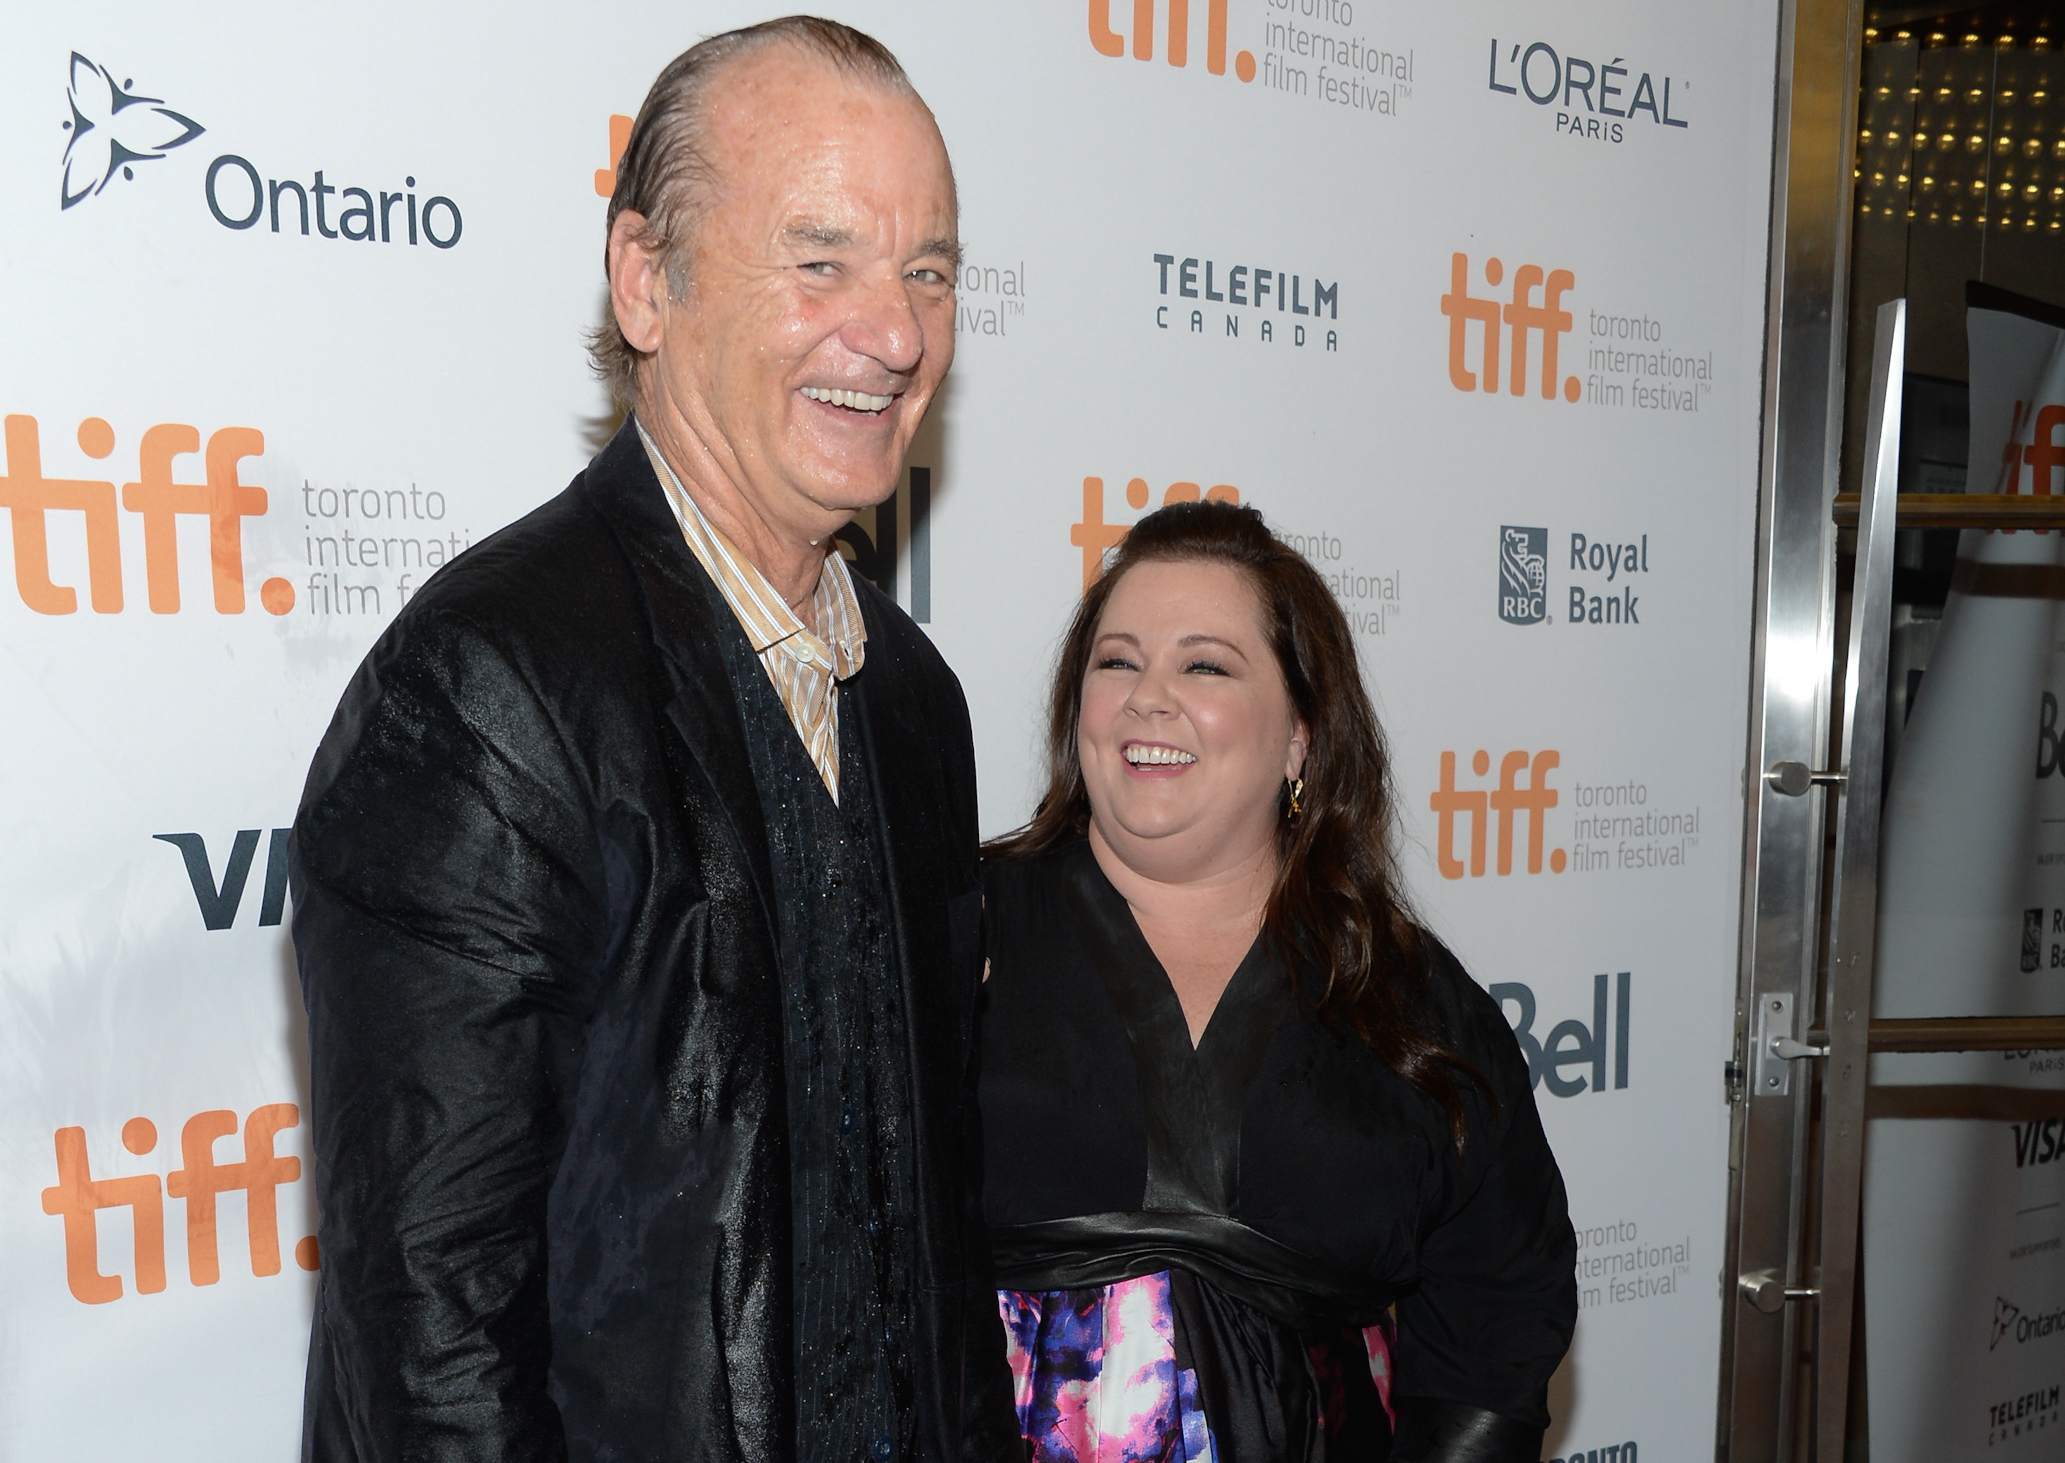 Bill Murray Allegedly Threw Fans' Cell Phones From Rooftop Bar: Report